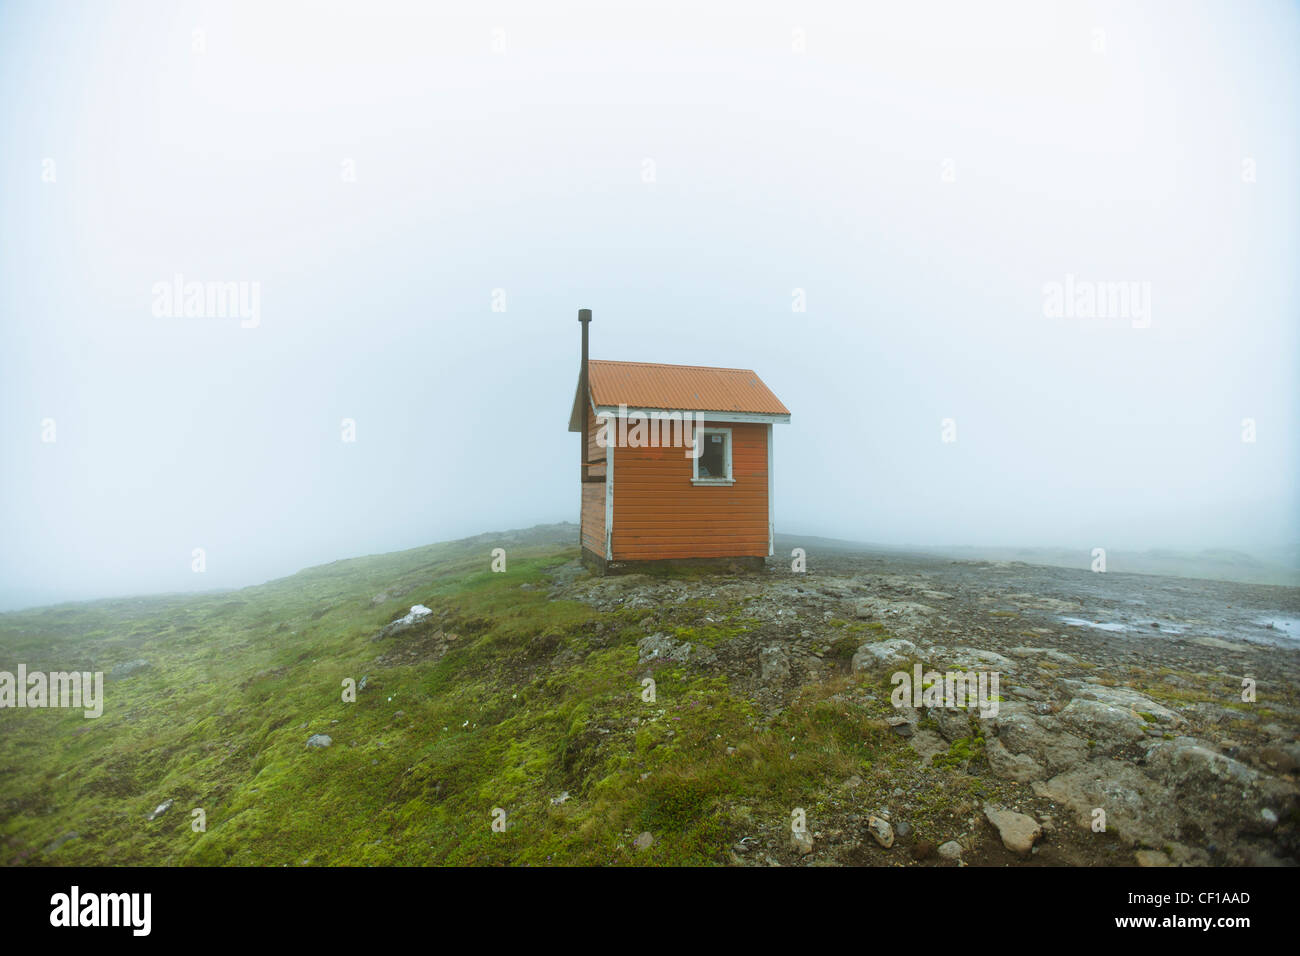 A Small Structure In The Middle Of A Wide Open Space Surrounded By Fog; Iceland - Stock Image